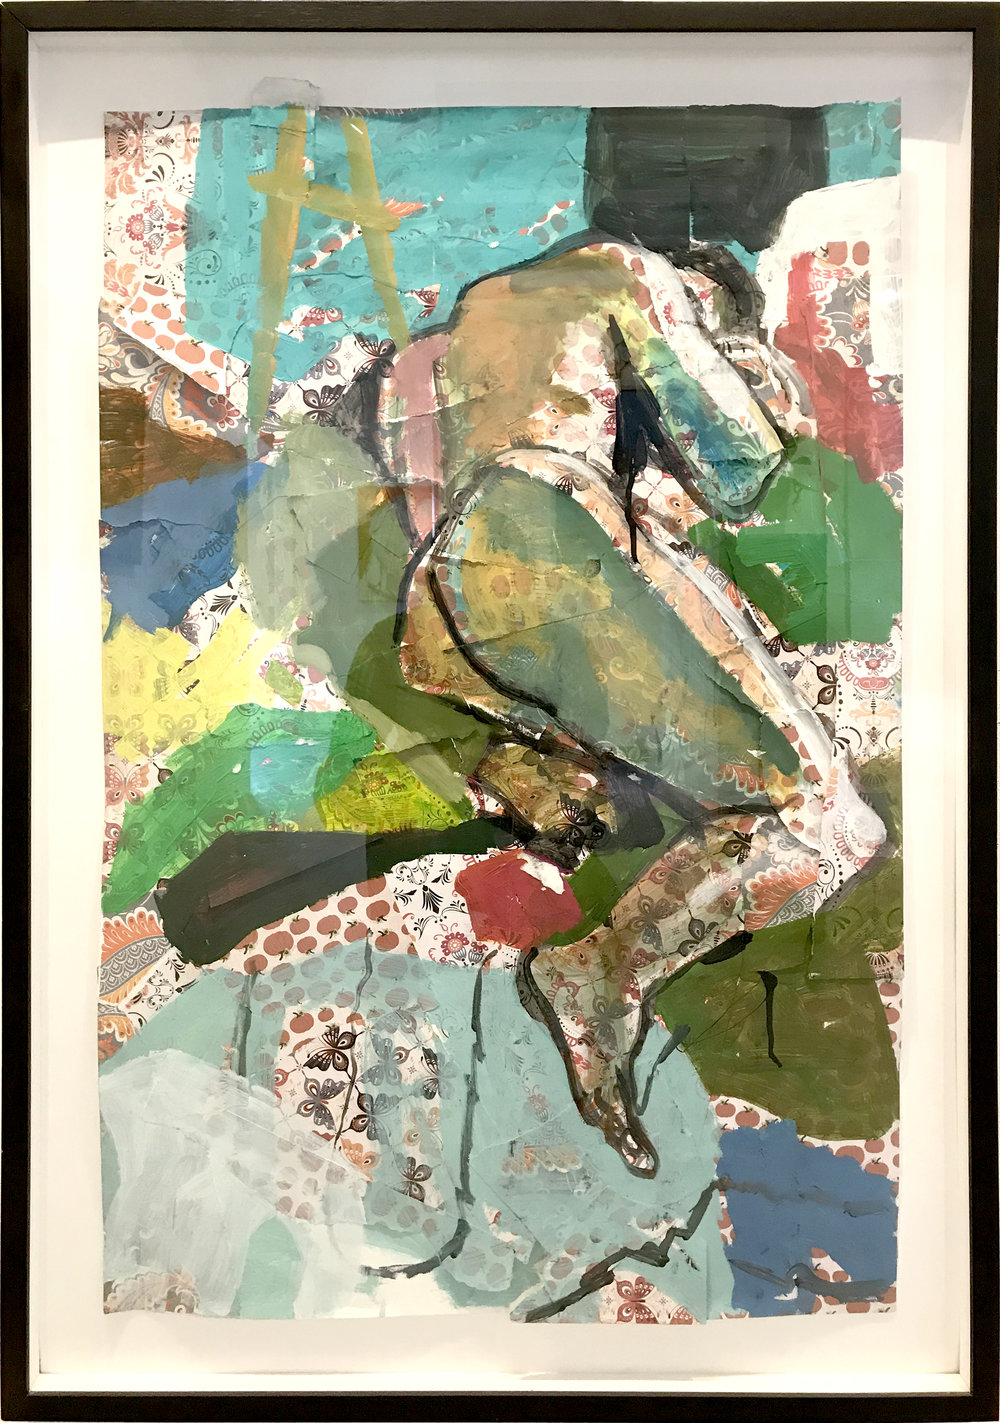 Barba Contemporary Art Tom Early, Paul in Recline, 28x40, acrylic on paper collage,  SOLD   + inquire